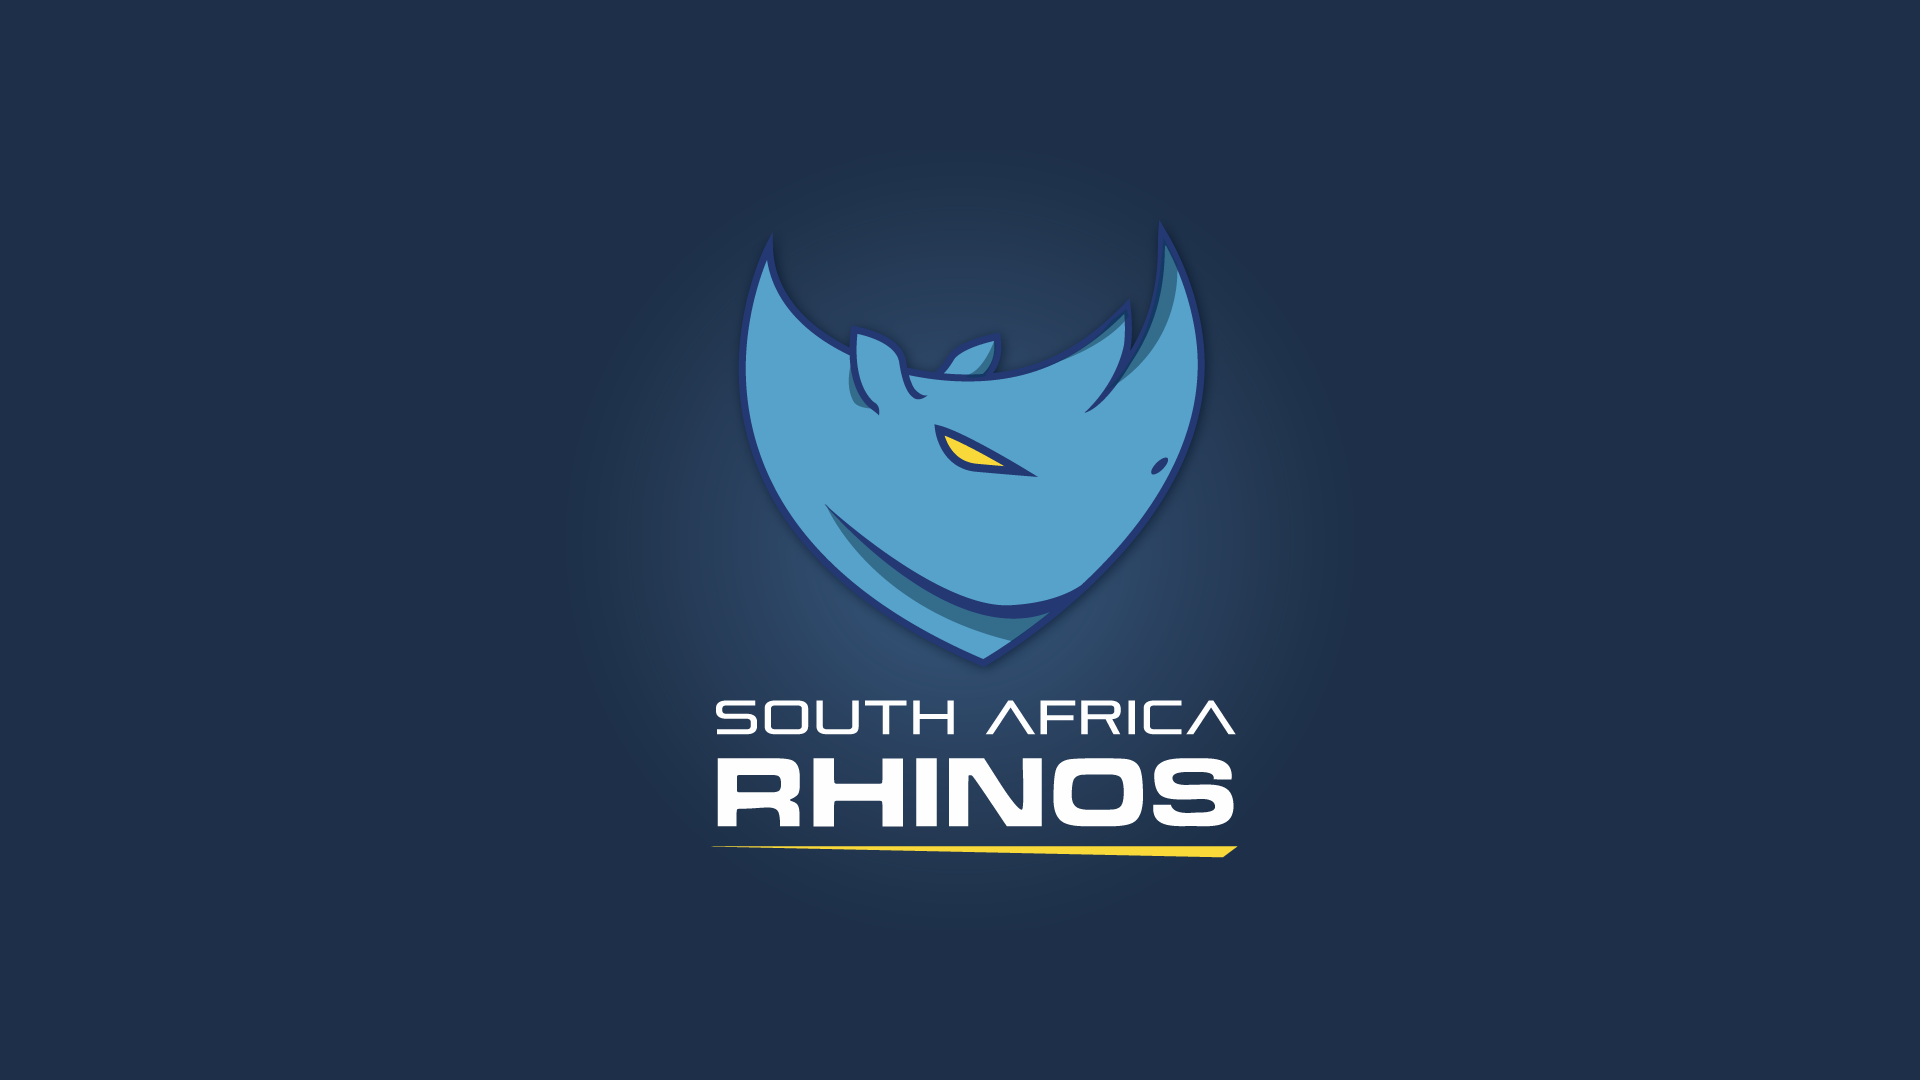 Team South Africa needs help to get to the Overwatch World Cup